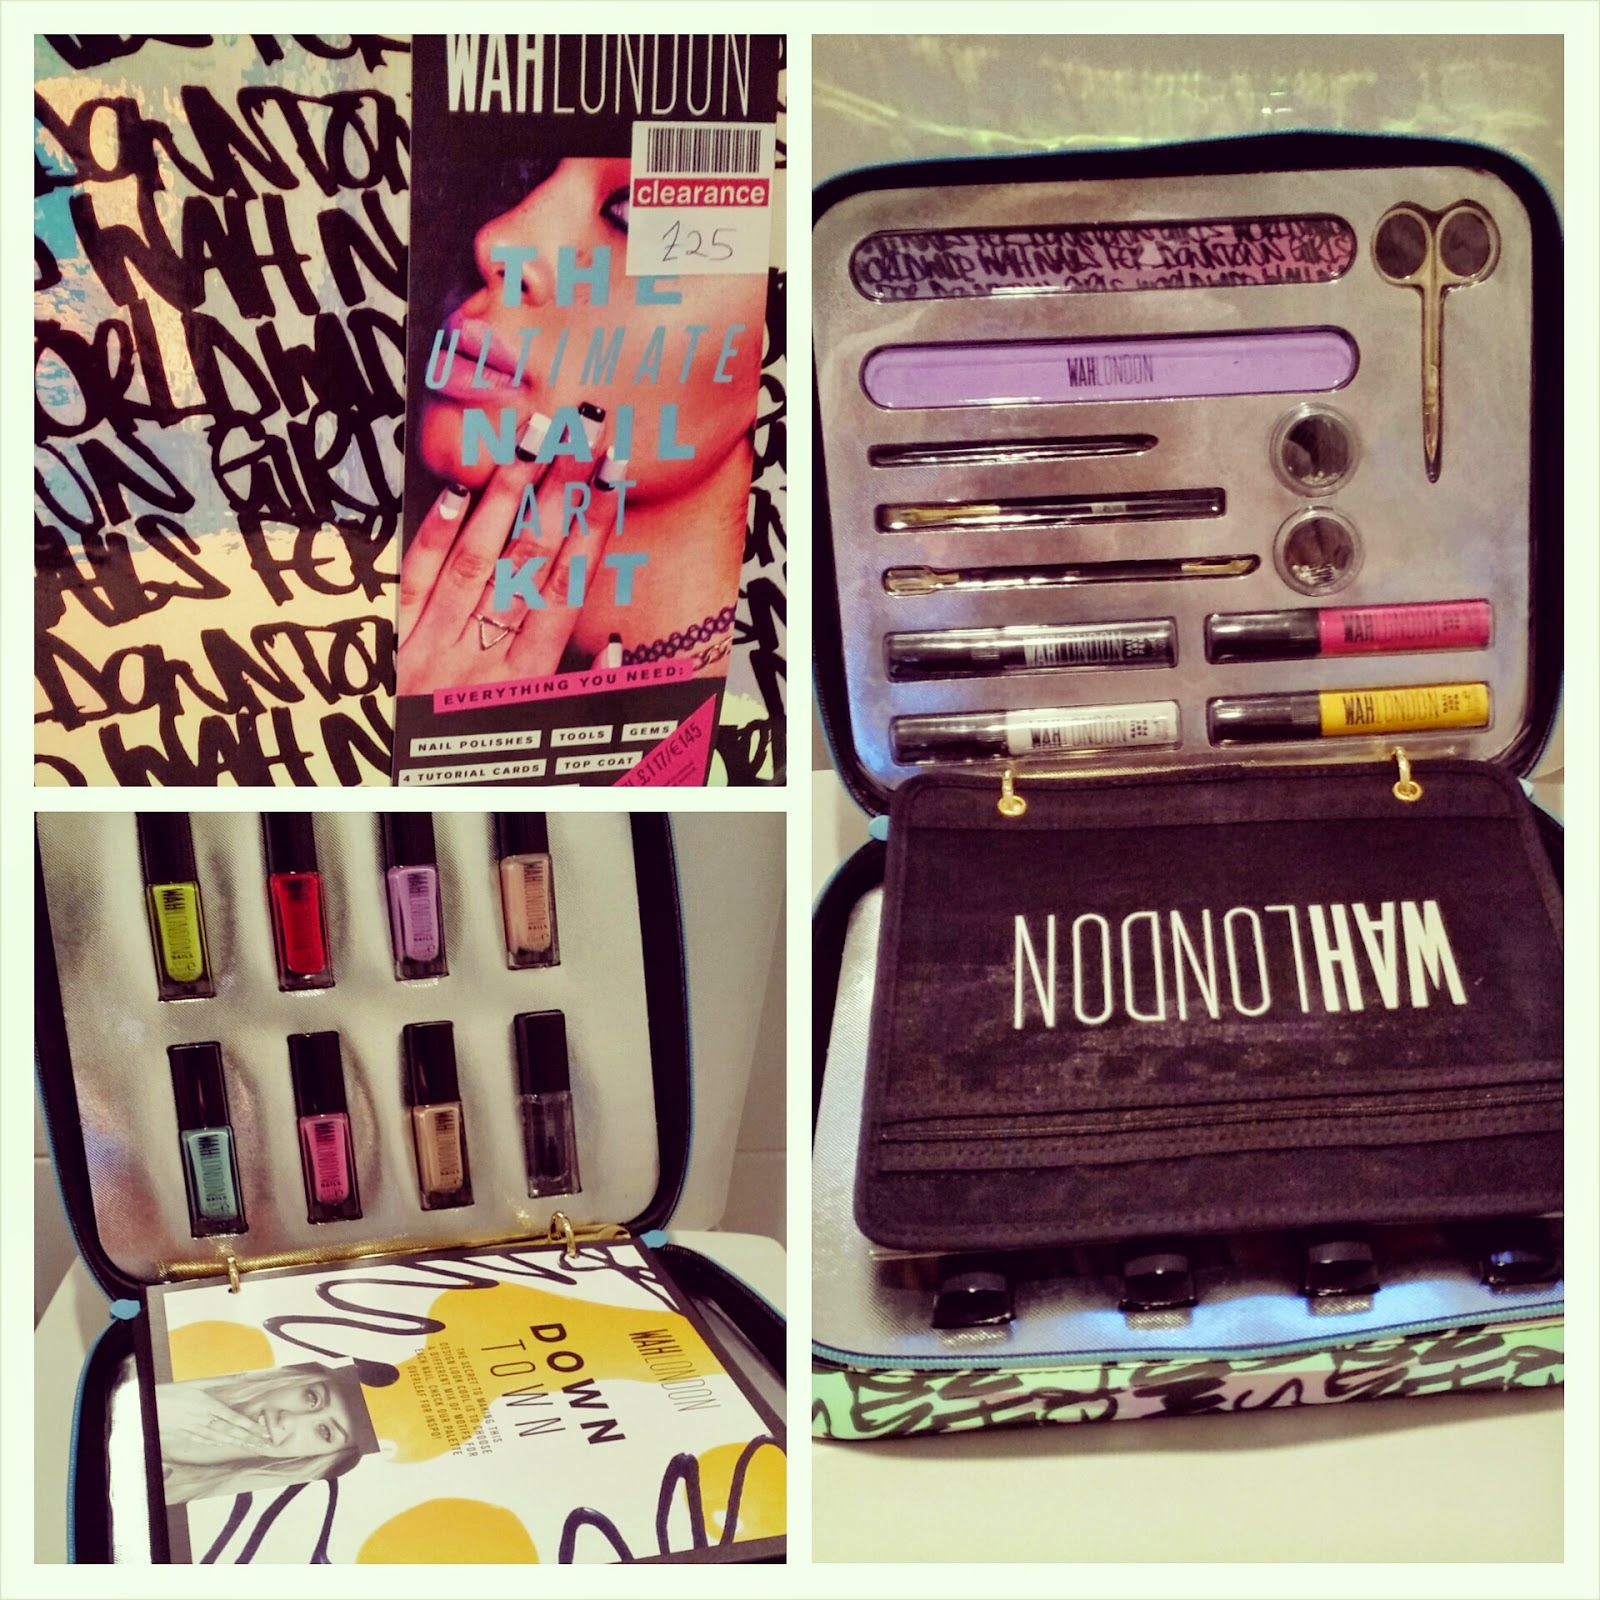 wah-nails-nail-art-kit-case-review